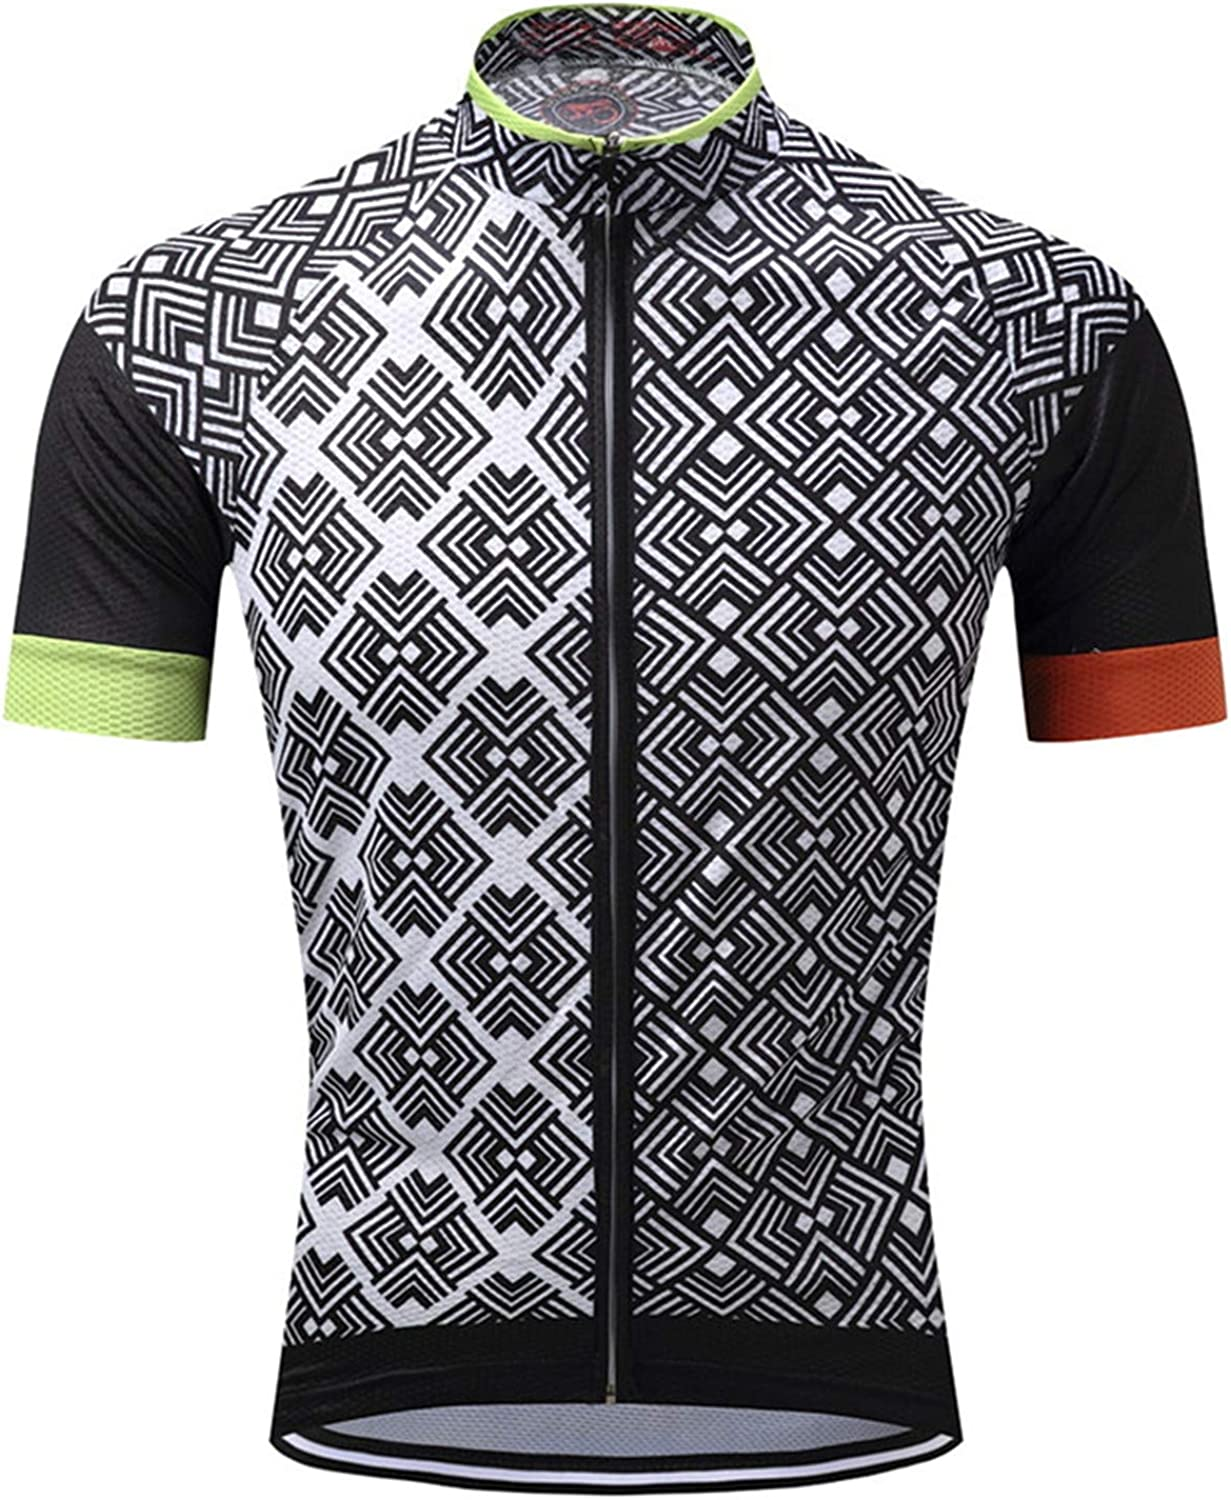 PSPORT Max 64% OFF Grid Max 84% OFF Men's Cycling Jersey Short Shirts with 3 Sleeve Bike